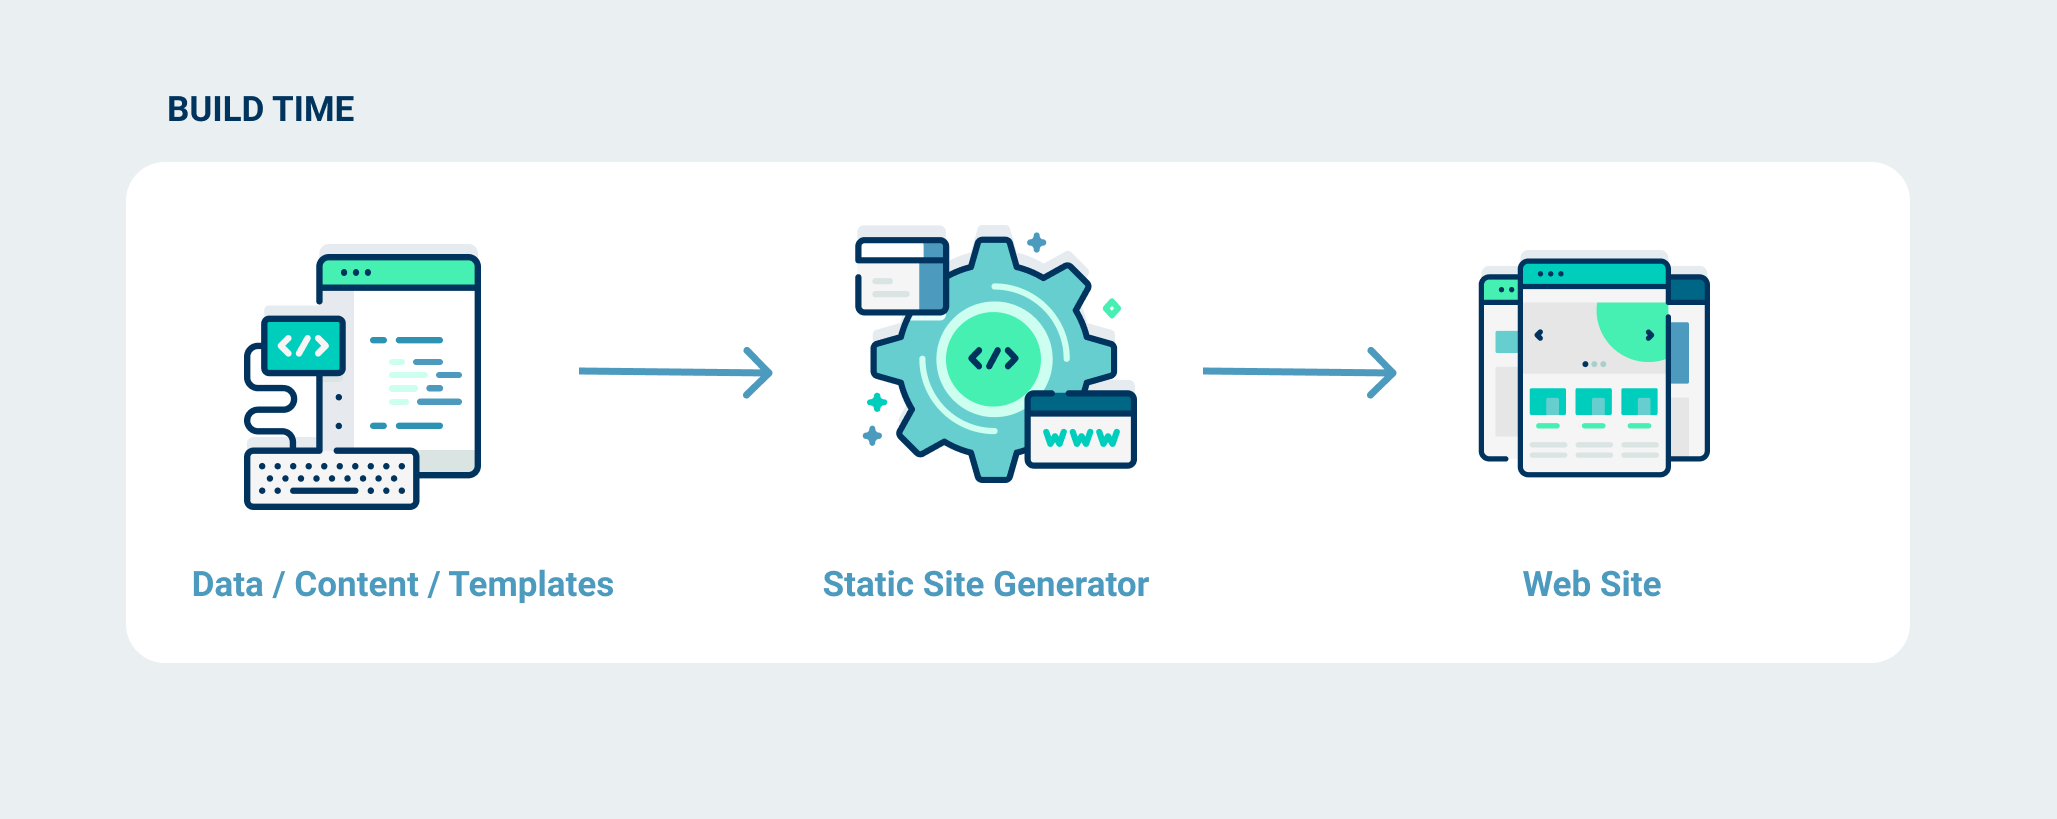 Diagram static site generator turning assets into a website at build time